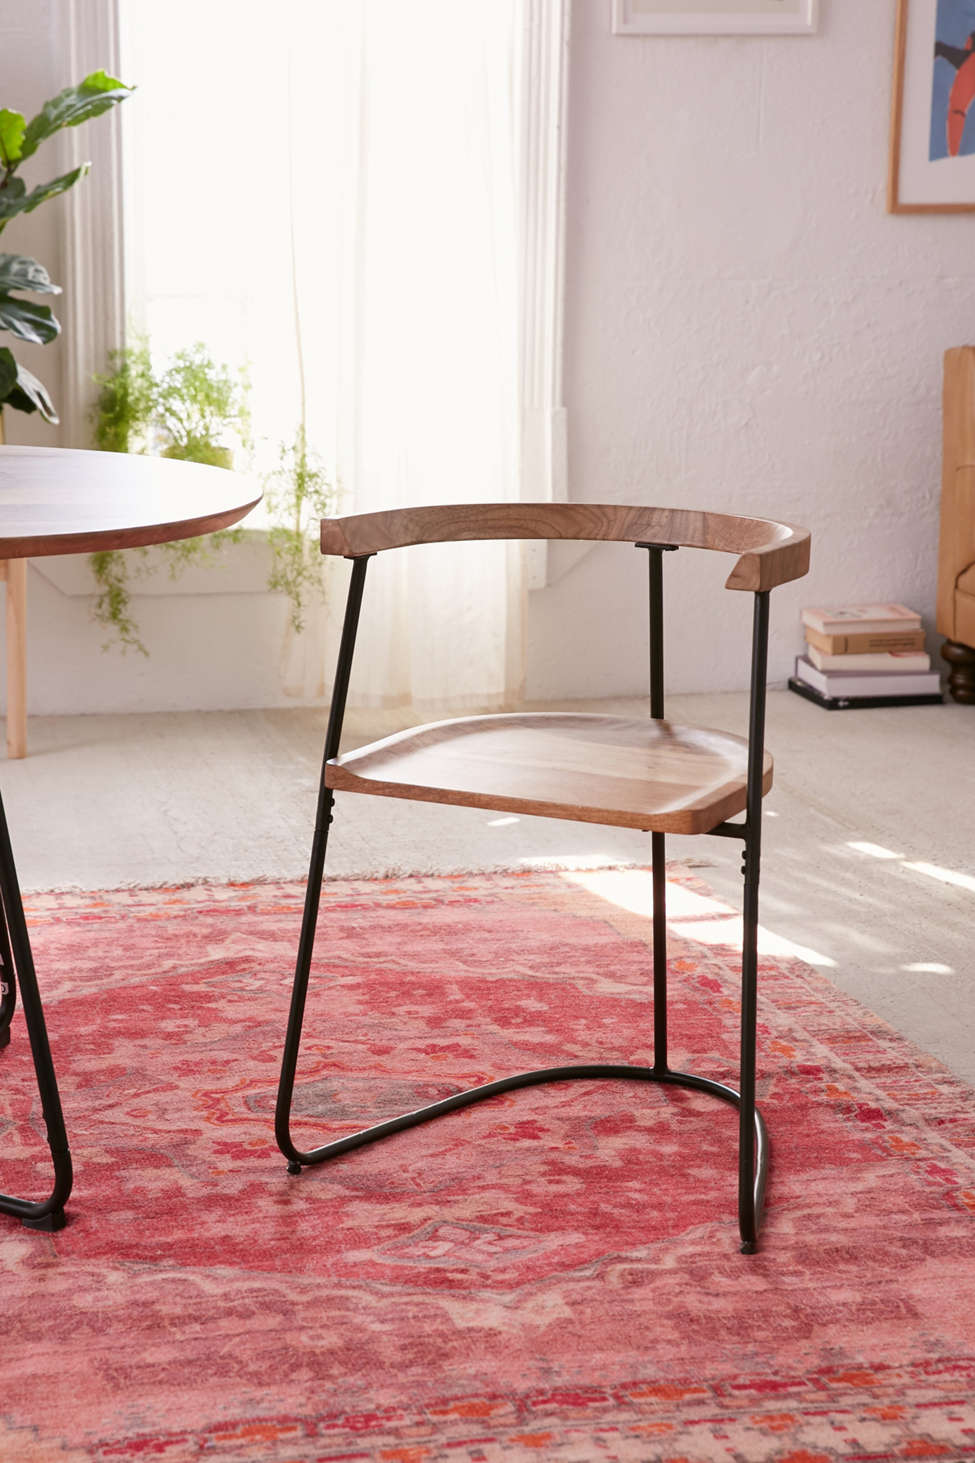 Famous Myta Dining Chair   Urban Outfitters IE91